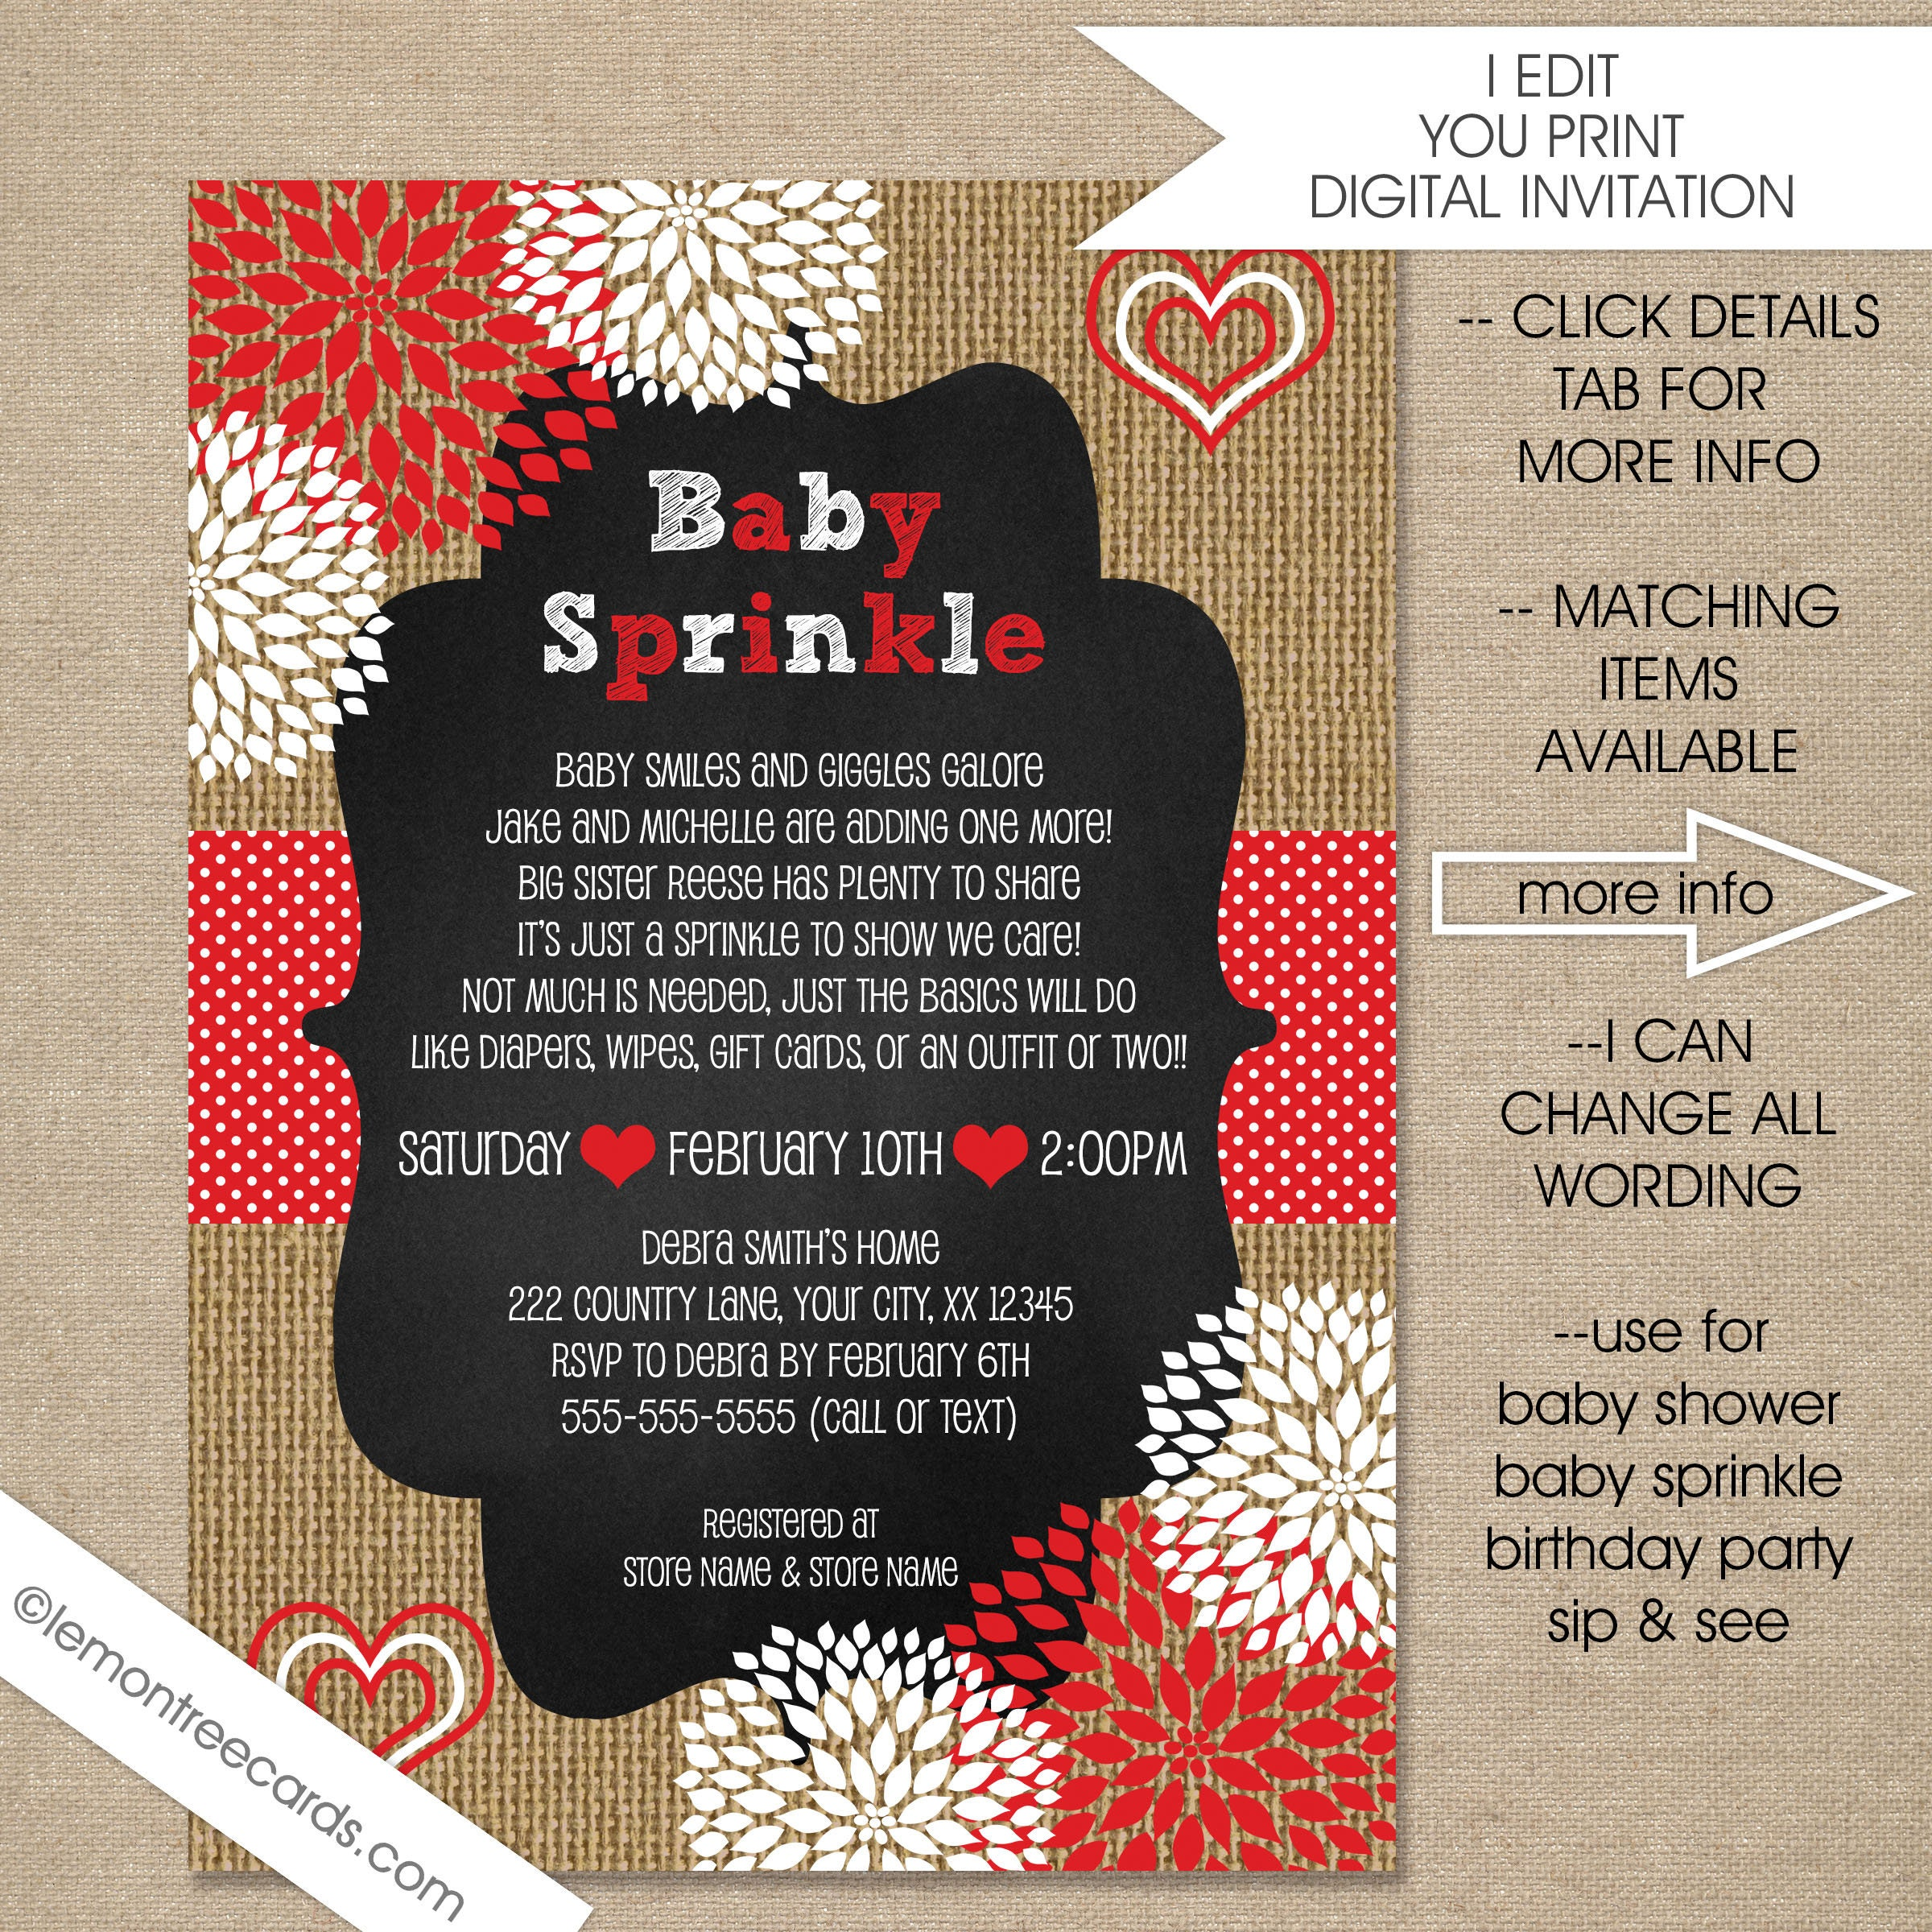 Valentine Baby Sprinkle invitation neutral gender baby